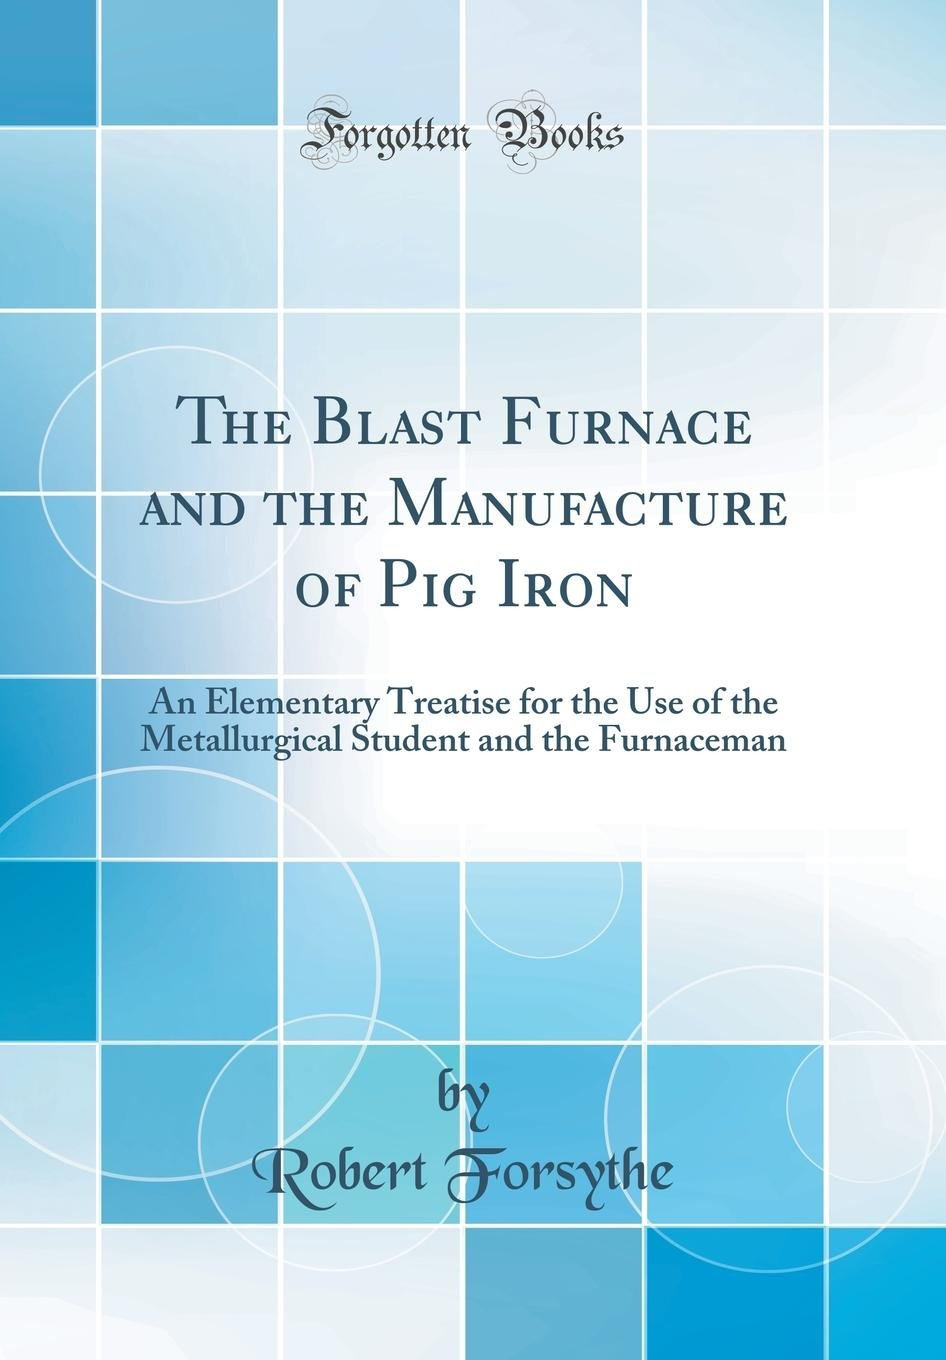 The Blast Furnace and the Manufacture of Pig Iron: An Elementary Treatise for the Use of the Metallurgical Student and the Furnaceman (Classic Reprint) ebook